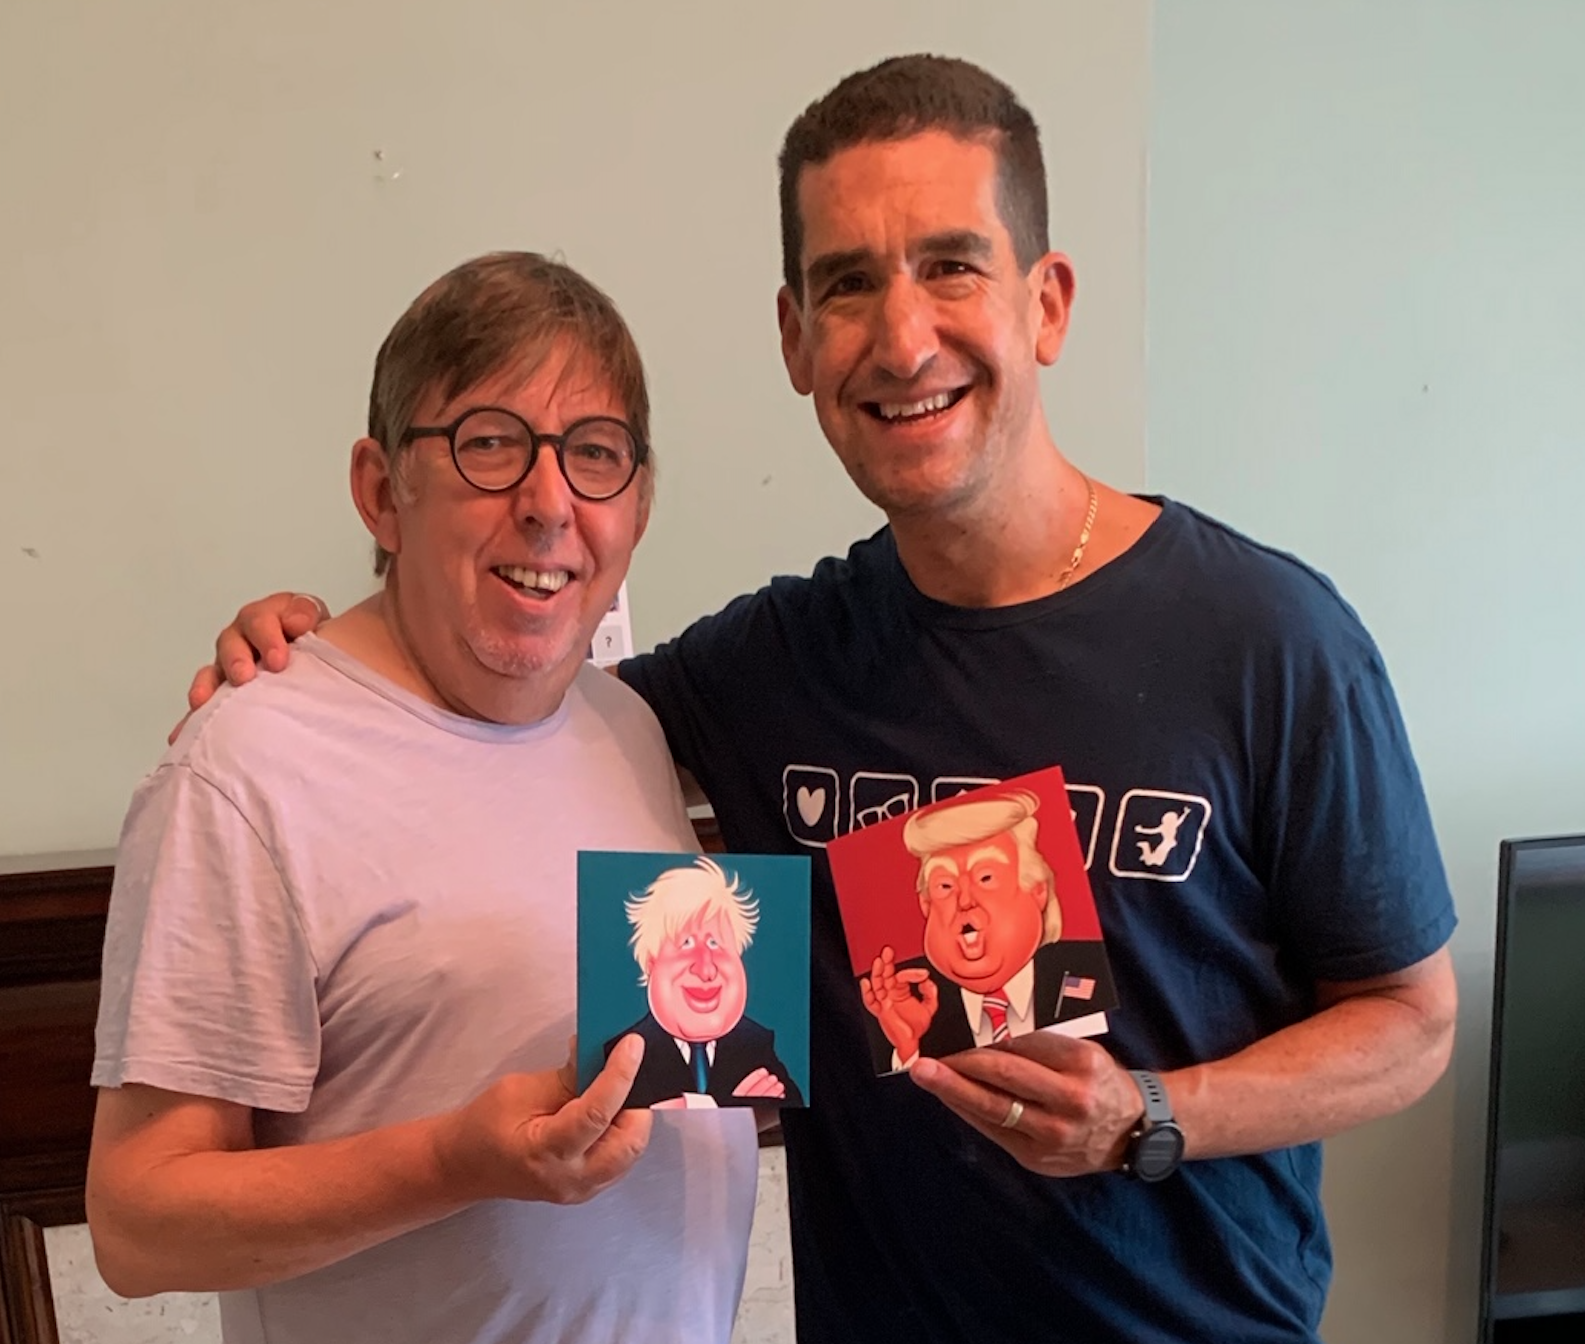 Above: John Wignall (right), owner of Really Wild Cards with Darren Altman the voice over artist, comedian and celebrity impersonator who is the voice in the cards.